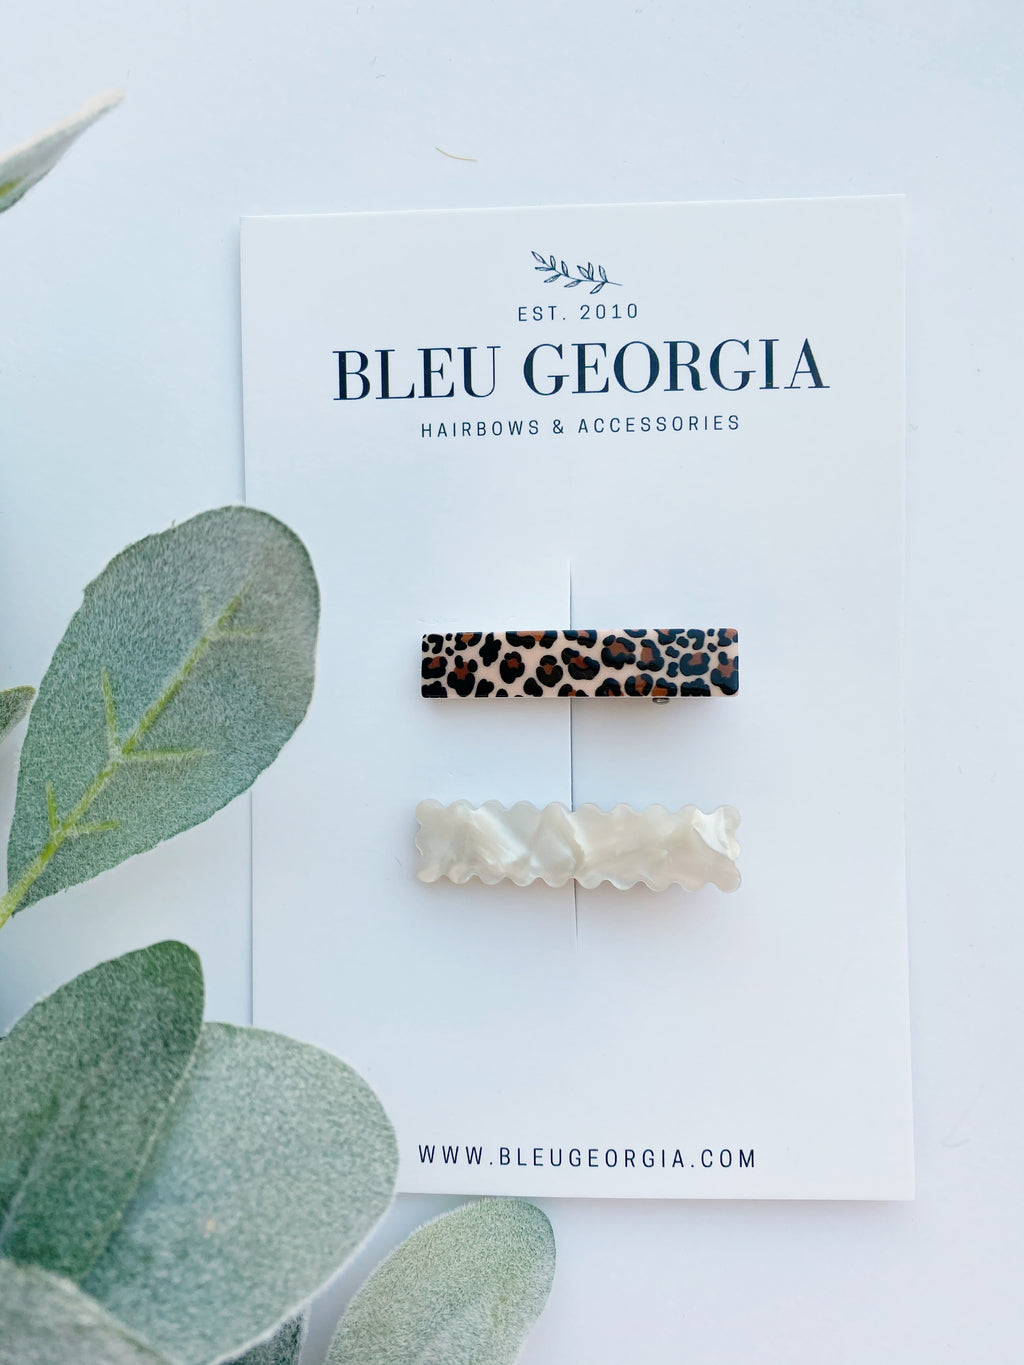 Scalloped Pearl & Cheetah - Duo Clip Set